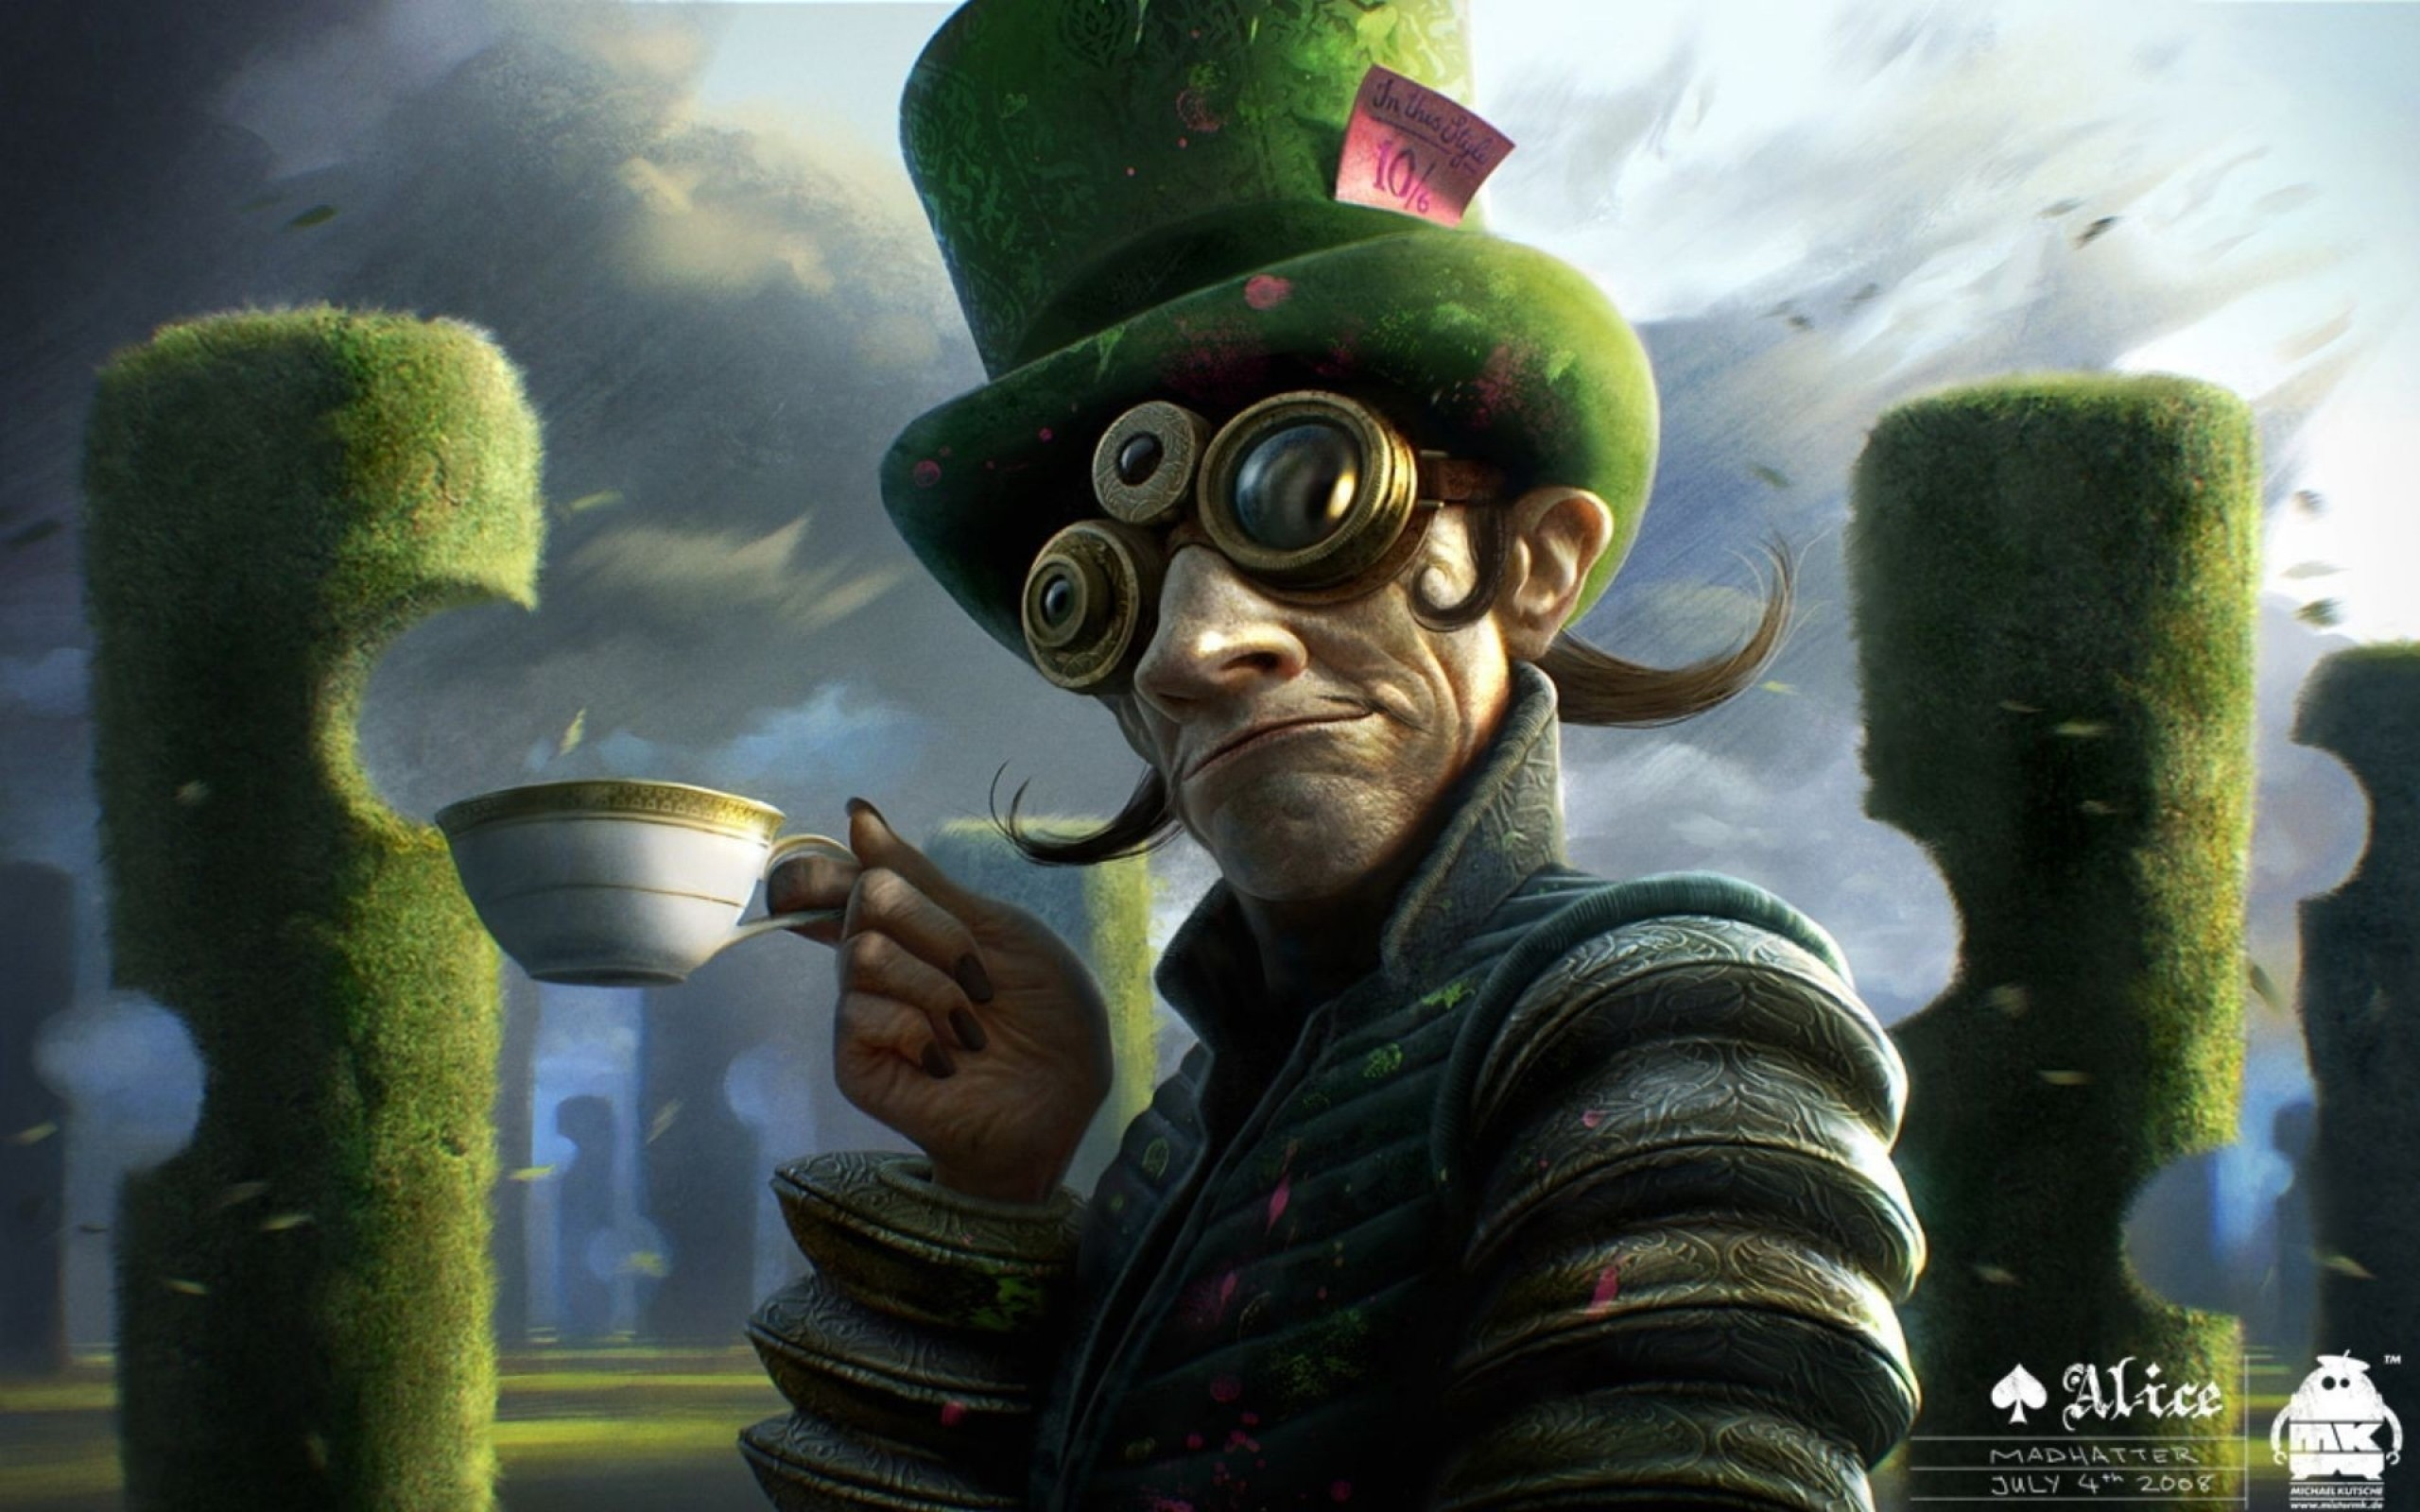 2560x1600 fantasy art mad hatter fan faces 1920x1200 wallpaper Art HD Wallpaper